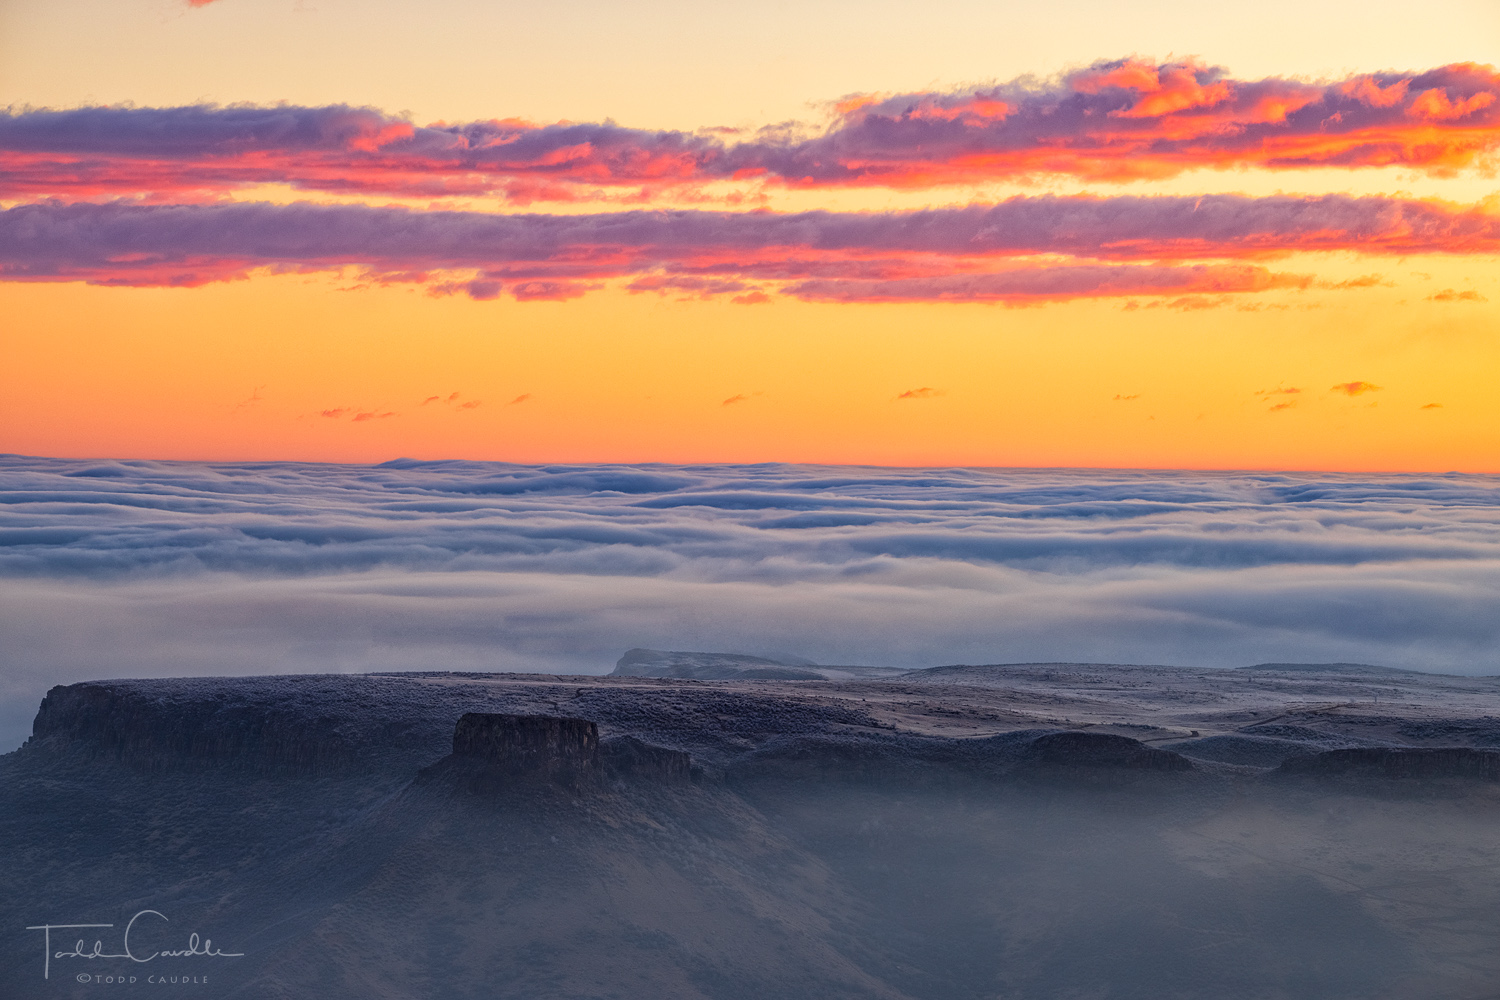 On a recent trip to photograph sunrise above the clouds from Lookout Mountain above Golden, one of the images had me pondering...